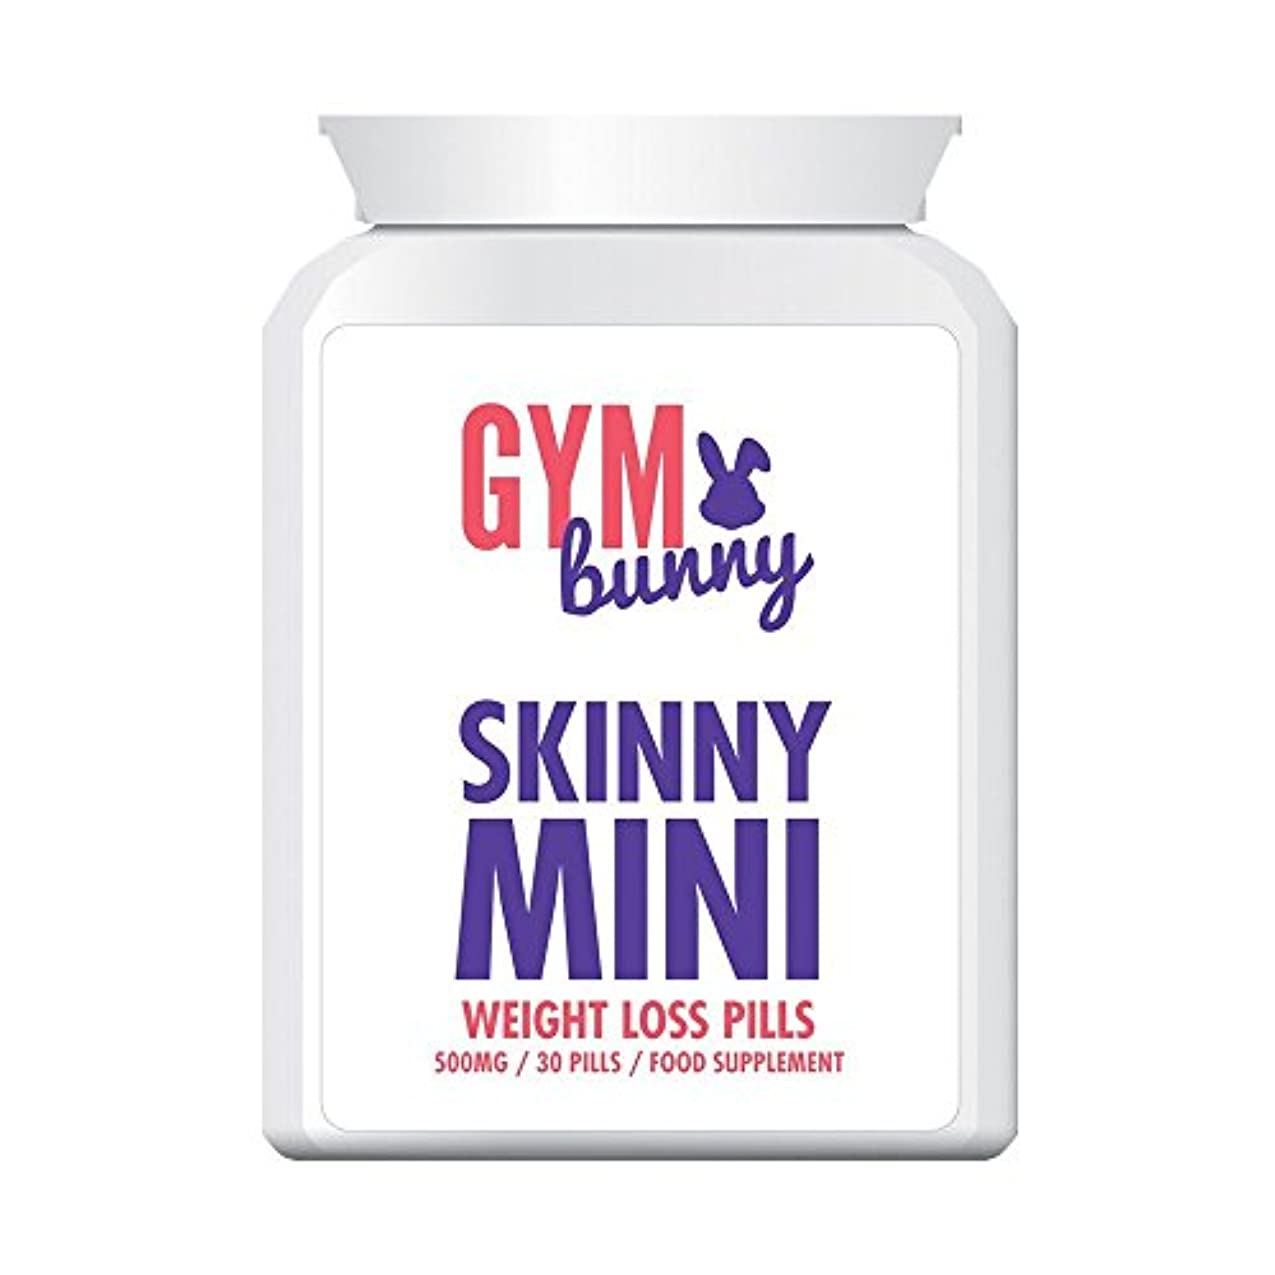 でる正午ペフGYM BUNNY SKINNY MINI WEIGHT LOSS PILLS減量の丸薬 - ダイエット錠剤は、体重、体脂肪がFAST LOSE Jimu BUNNY SKINNY mini genryō no gan'yaku...